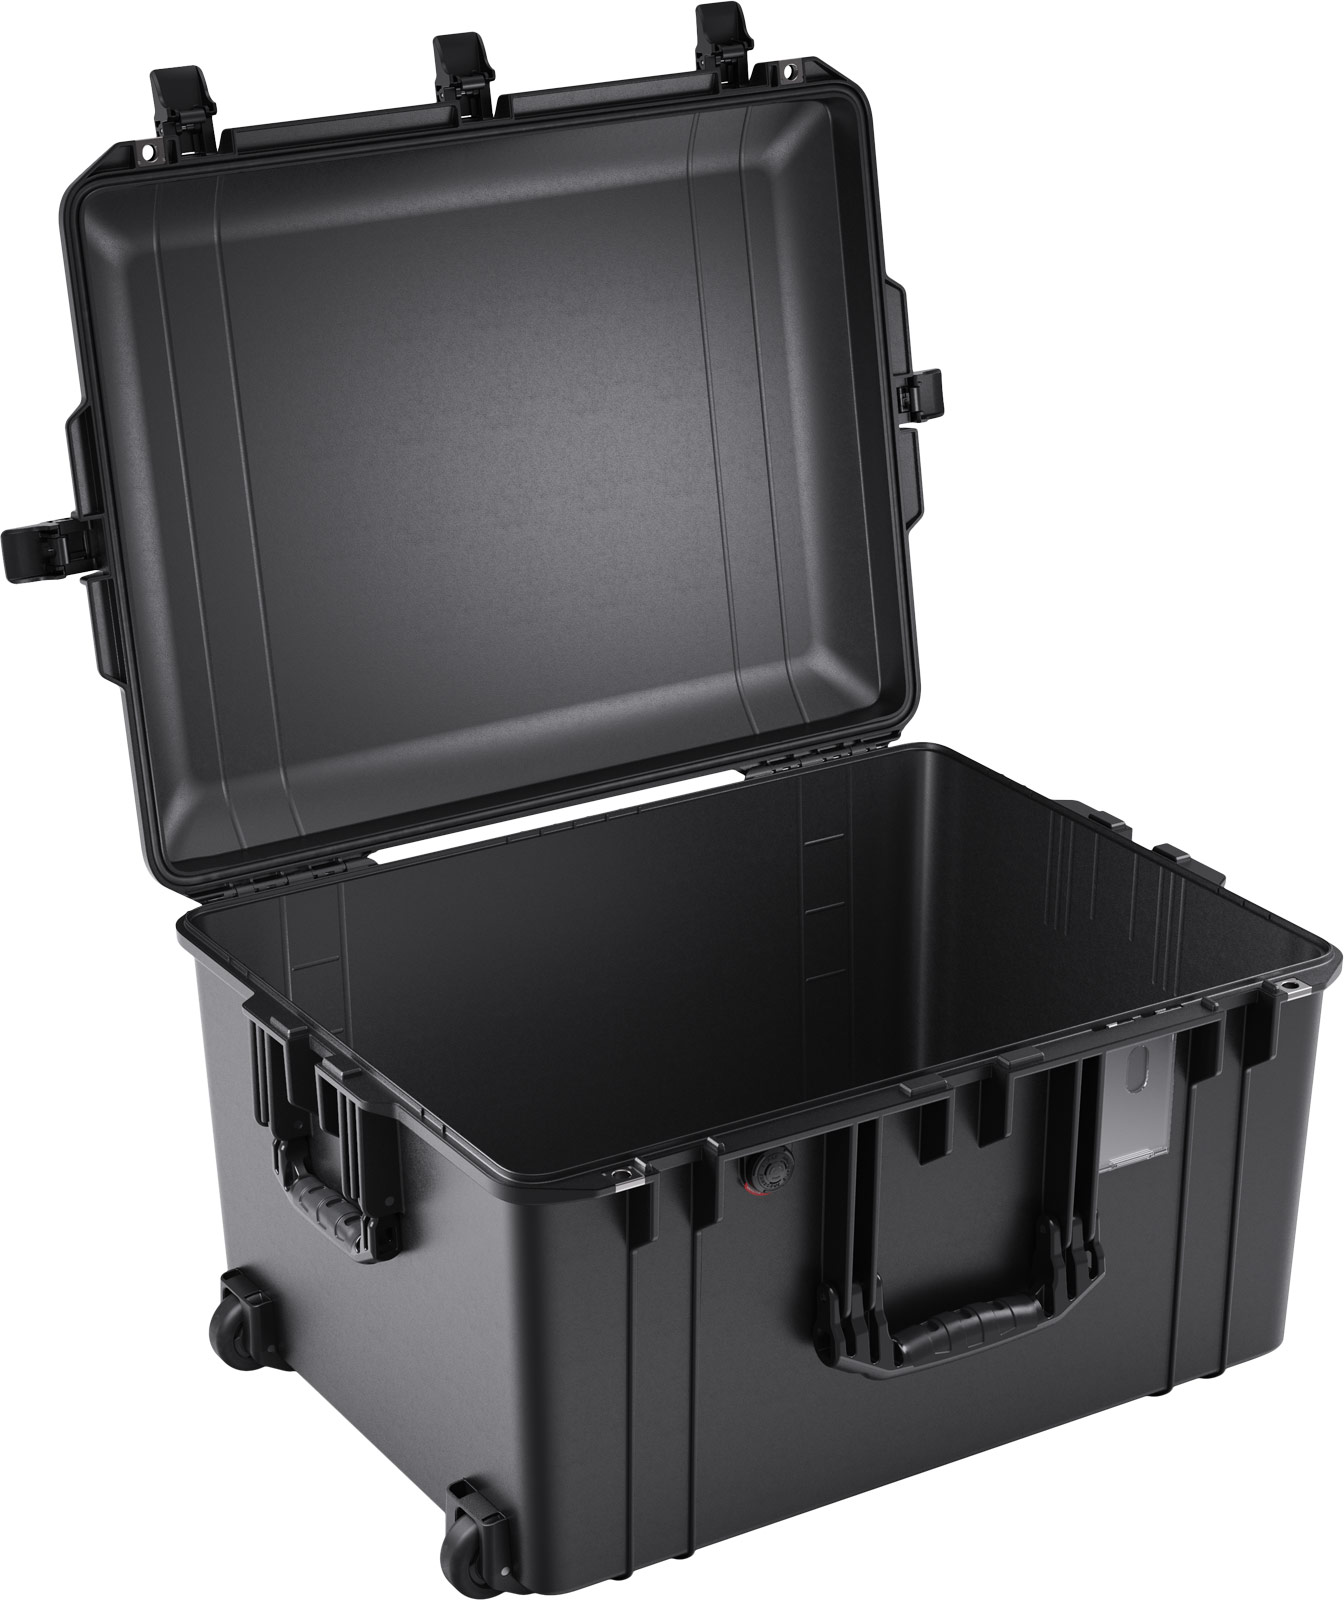 pelican 1637nf air case deep travel cases